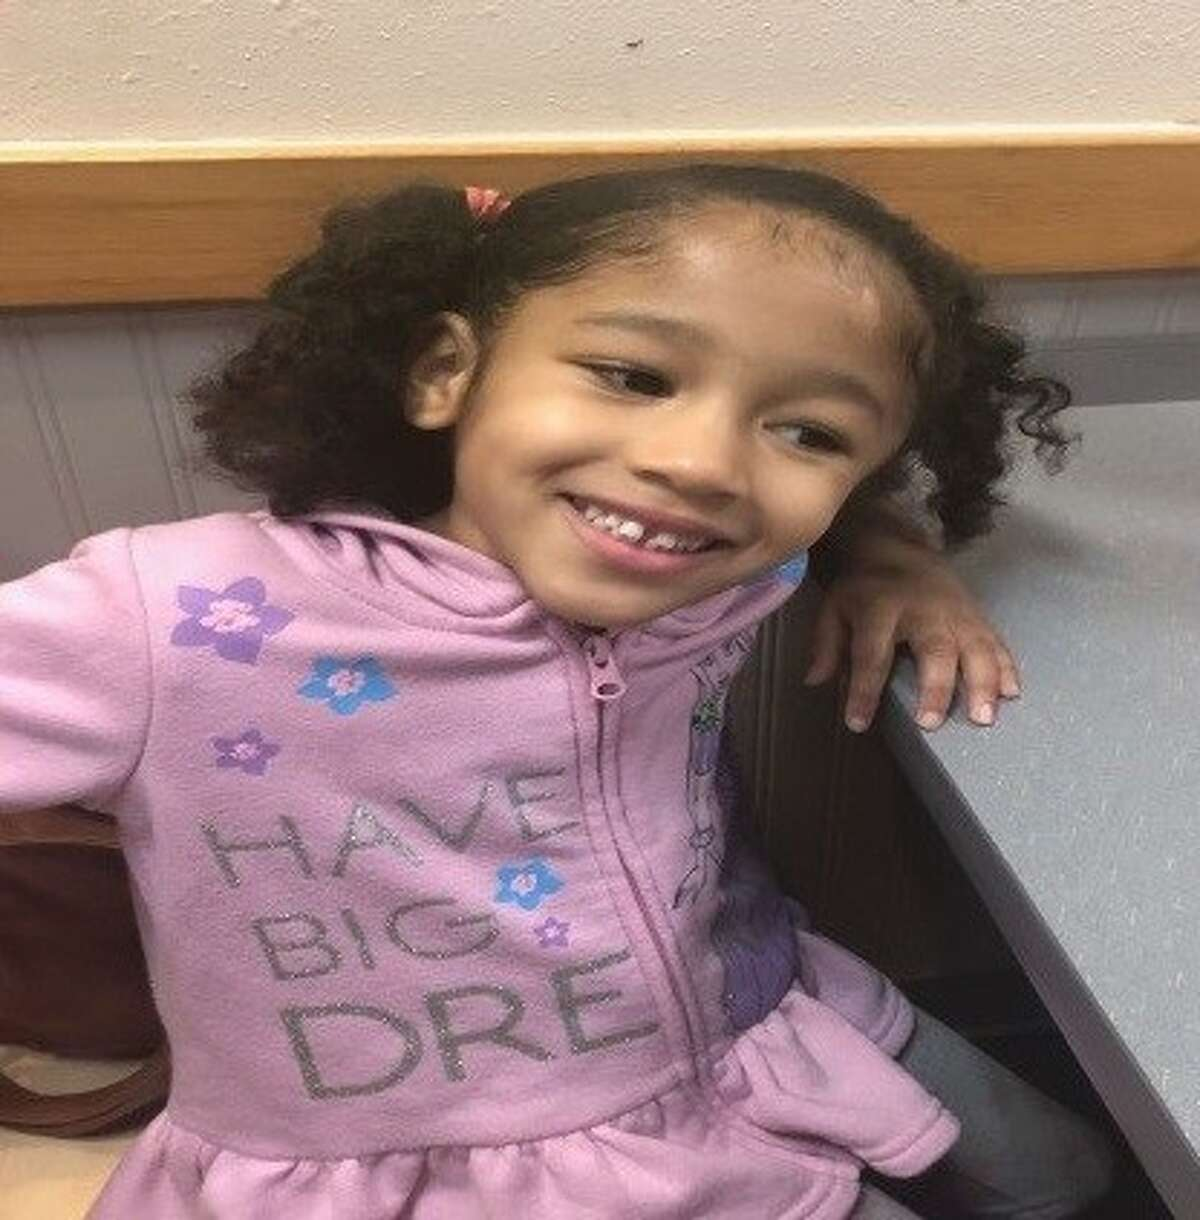 Police are looking for a 5-year-old who was possibly taken on Saturday by three men in north Houston, according to a news release from the Houston Police Department.